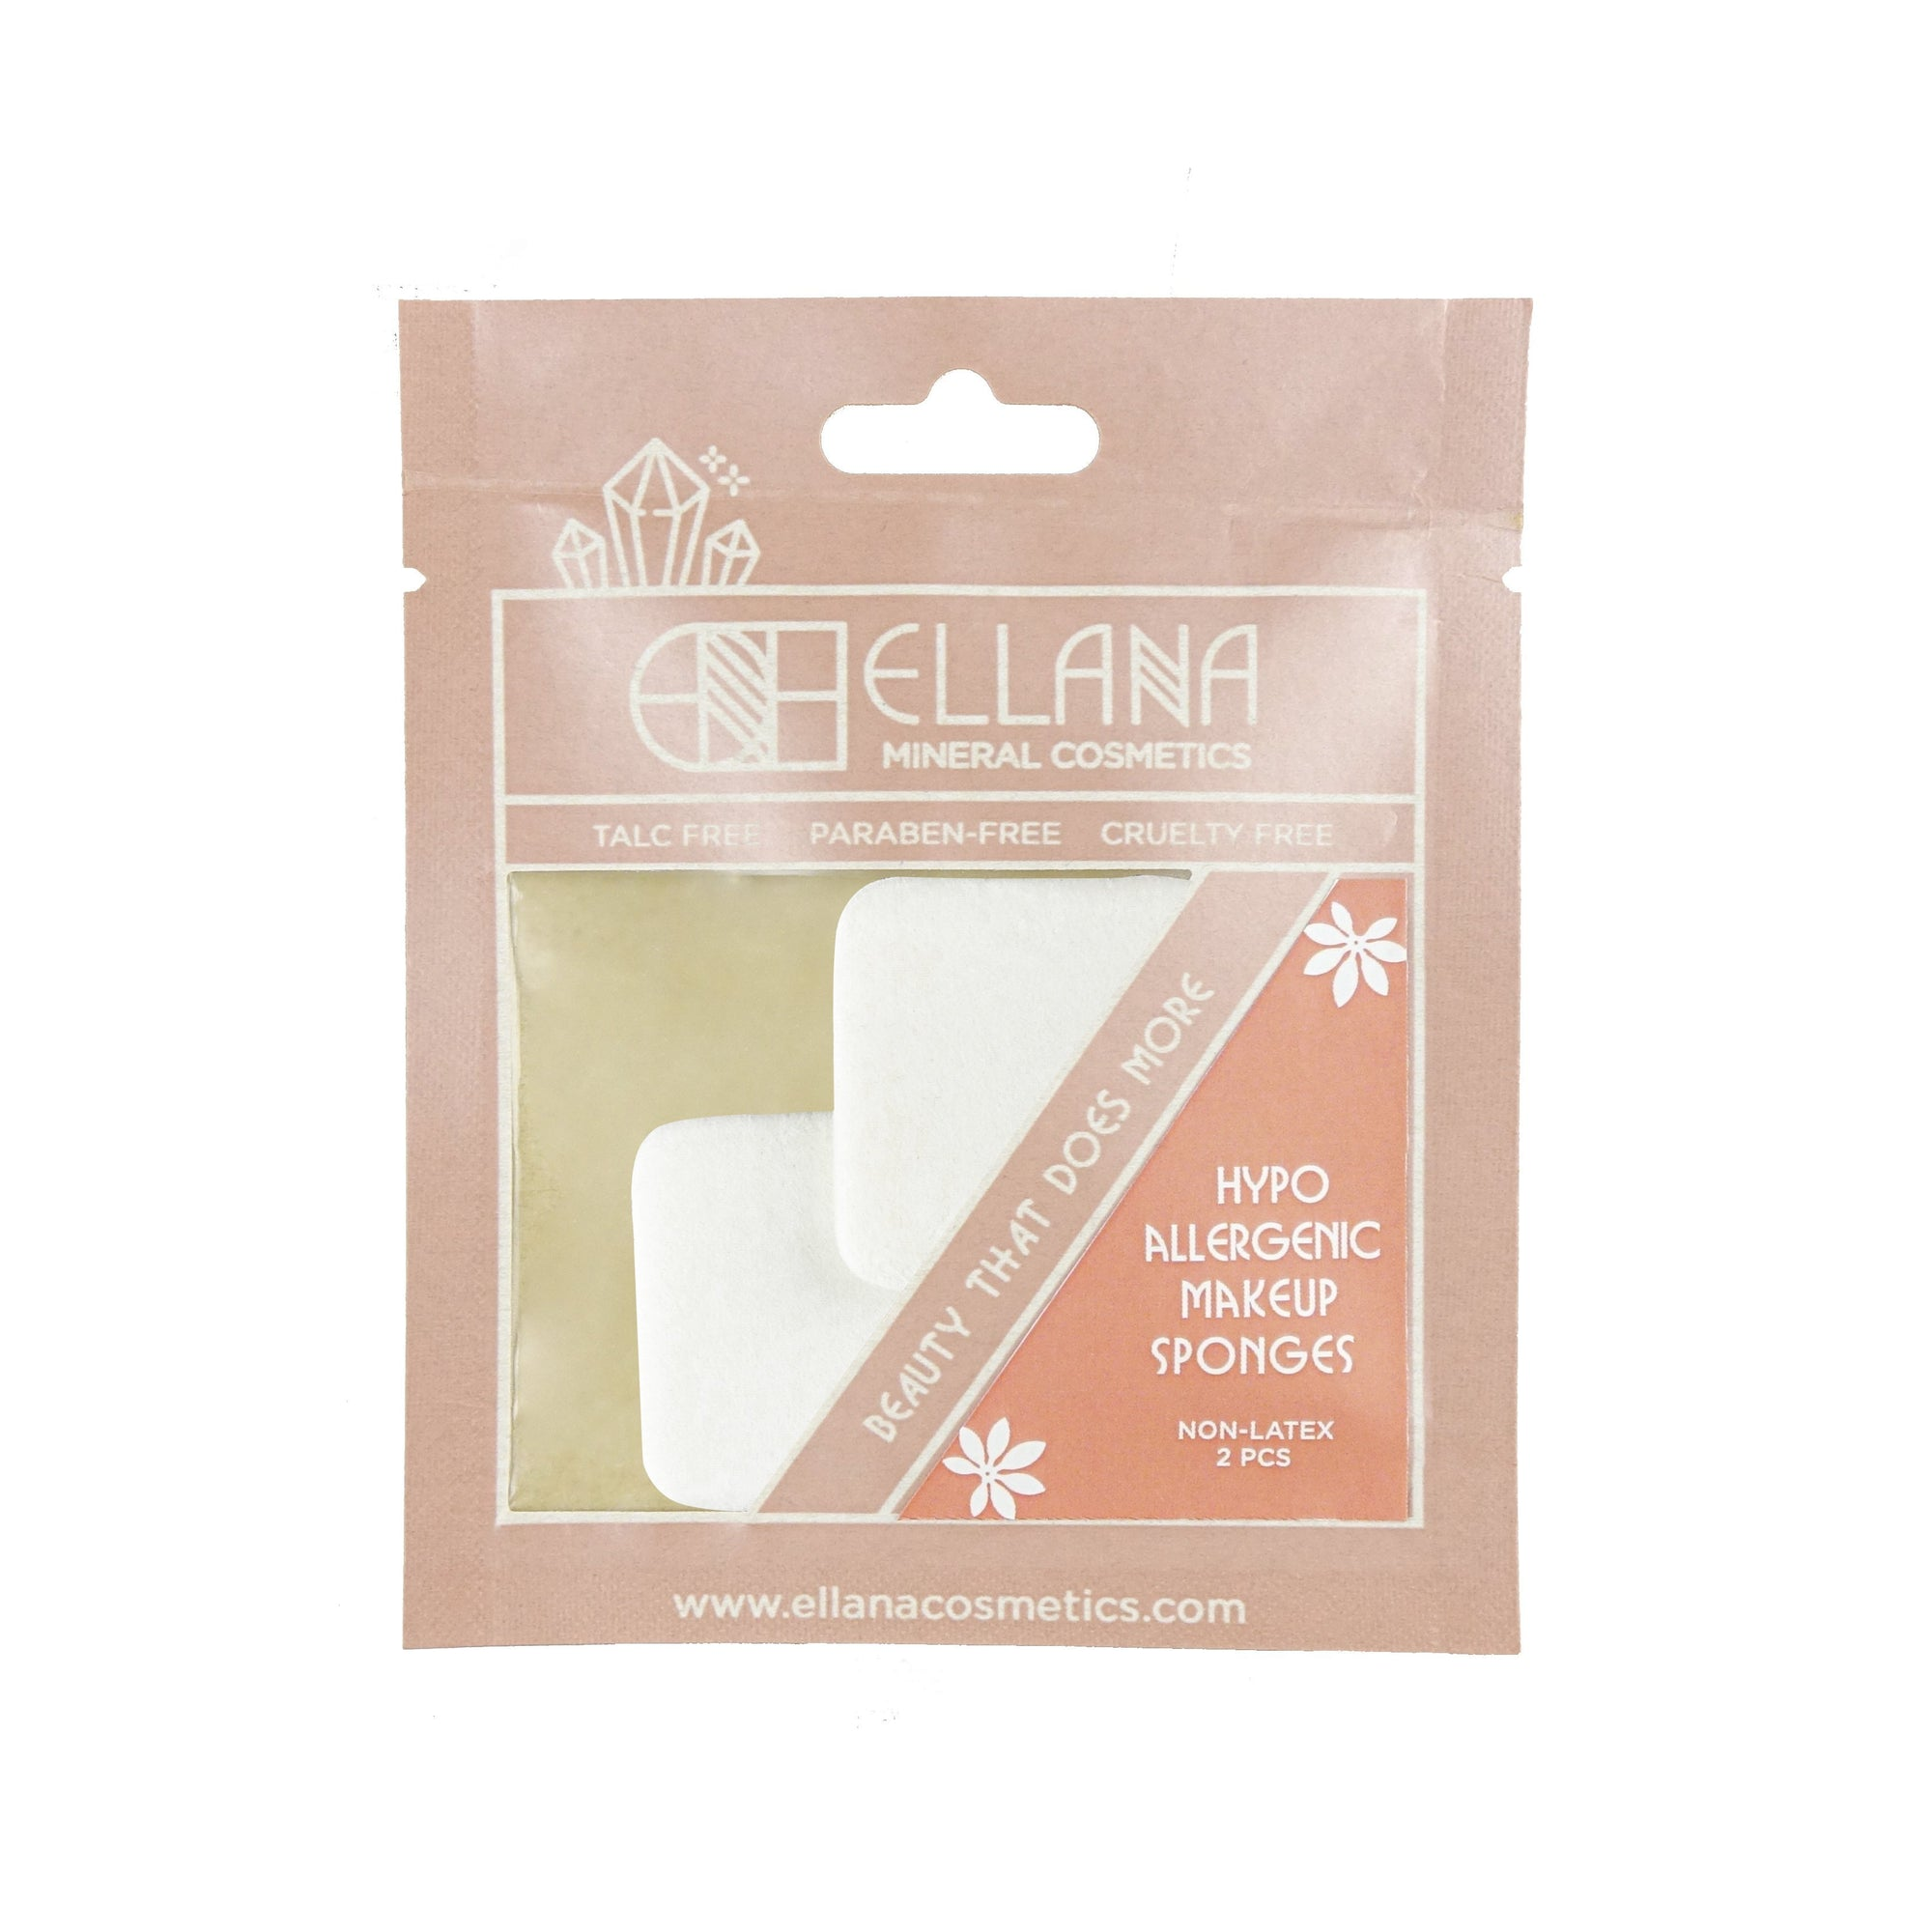 Hypoallergenic Non-Latex Makeup Sponges